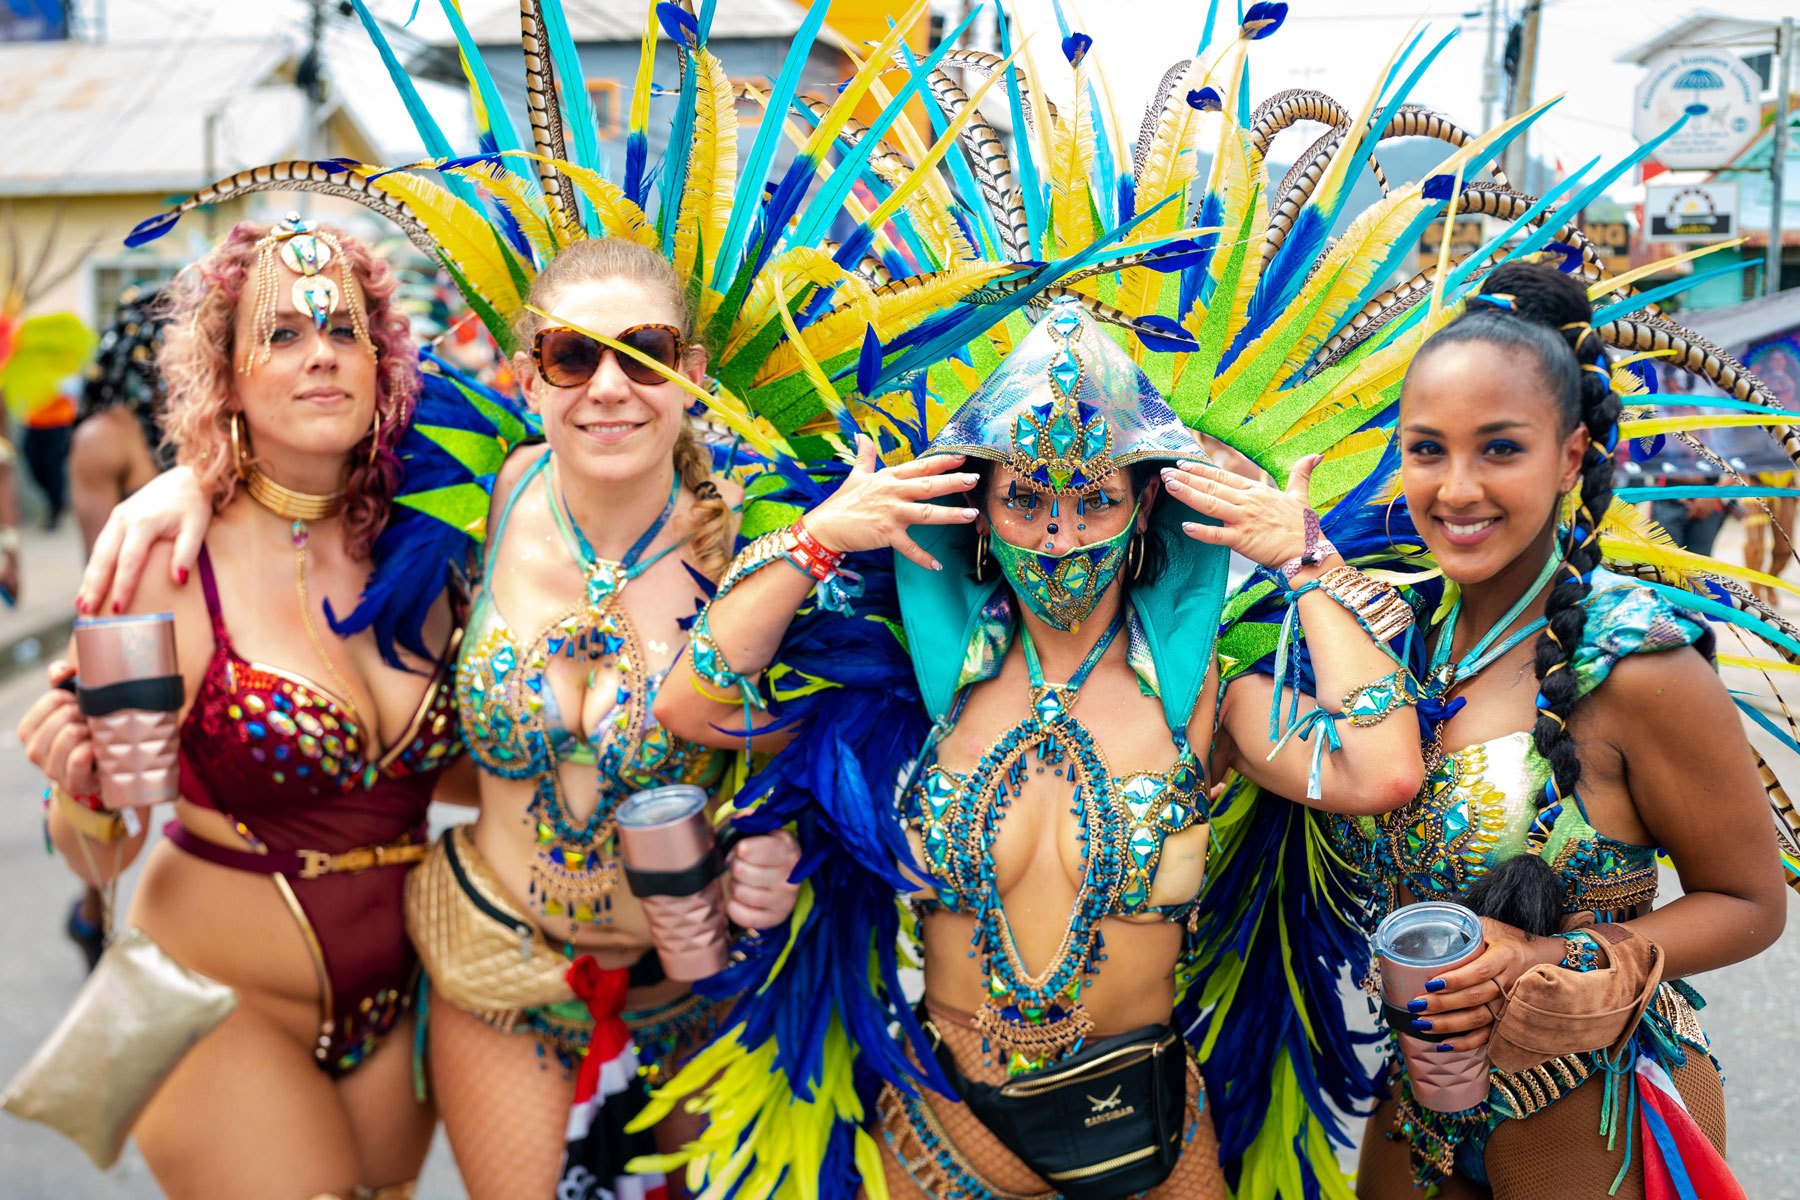 Women in feathered costumes at carnival